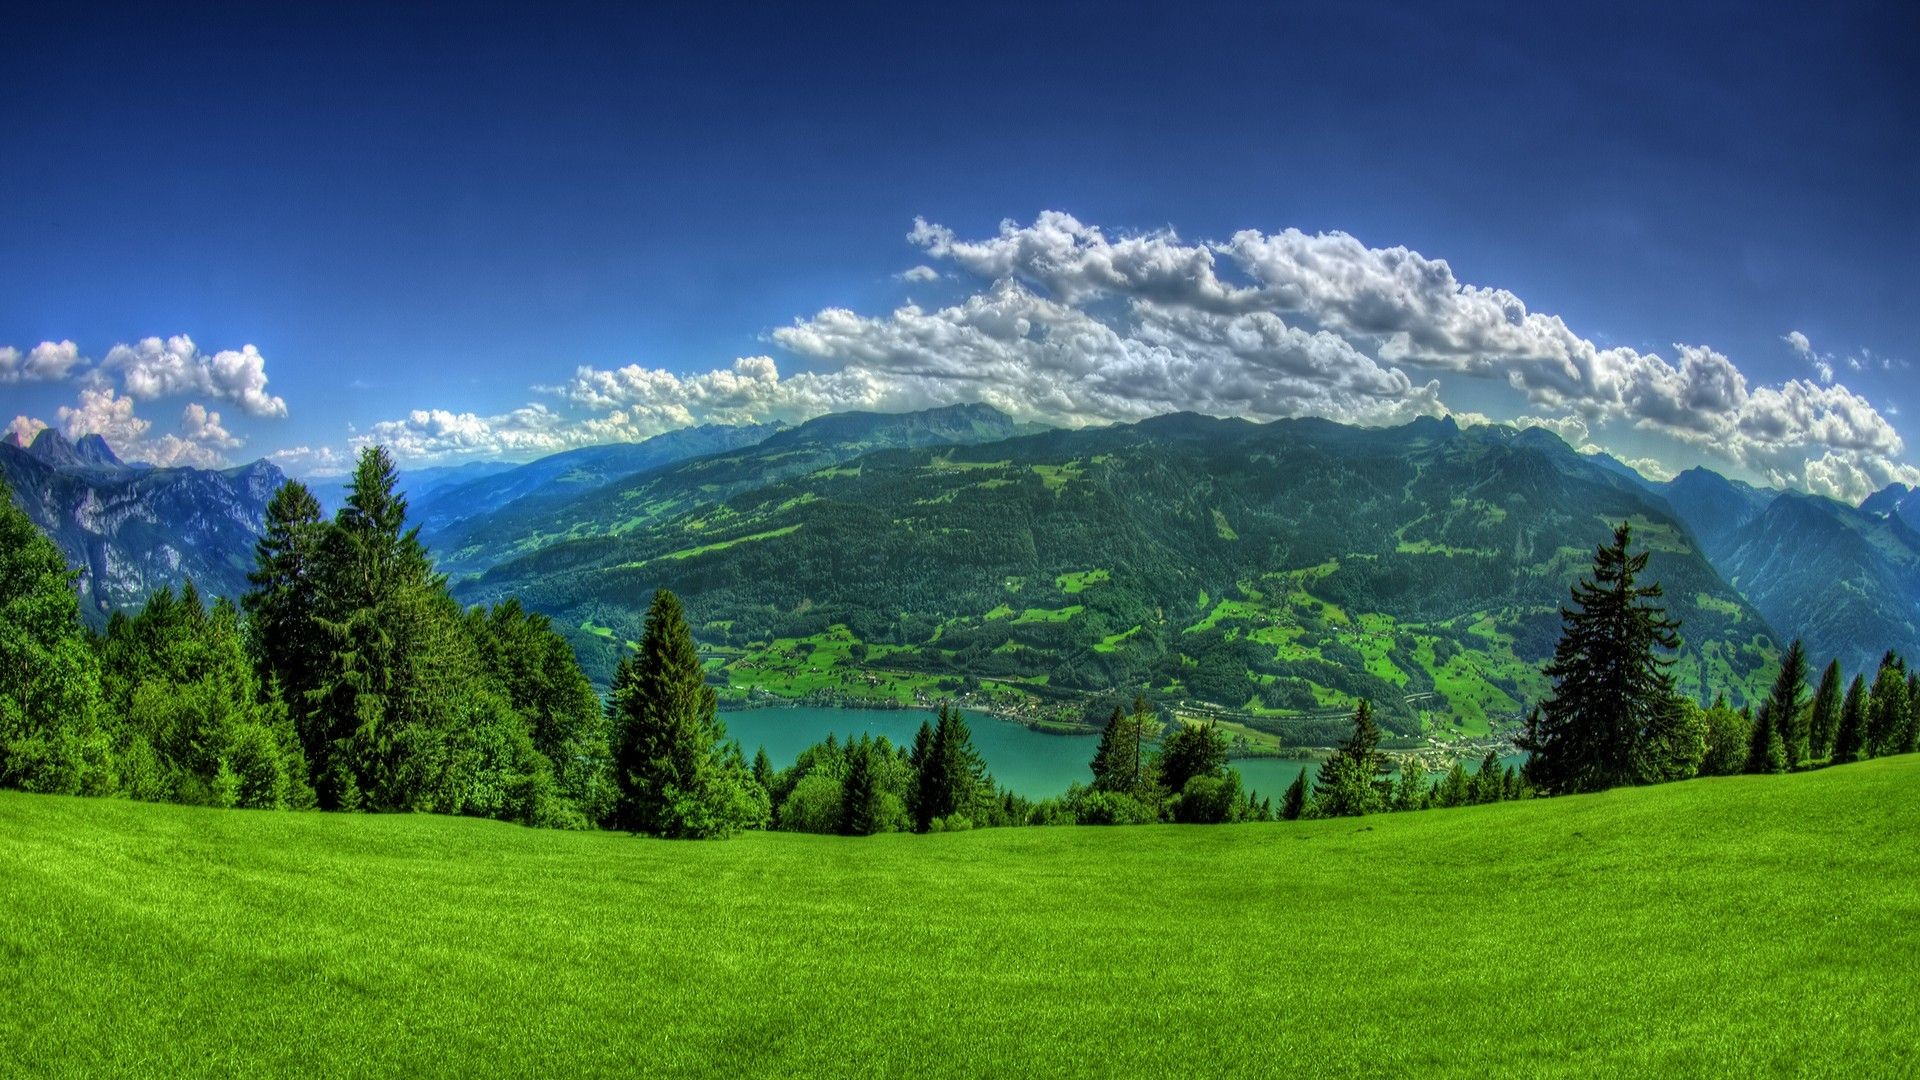 Nature background download free cool hd backgrounds for - Nature background 1920x1080 ...